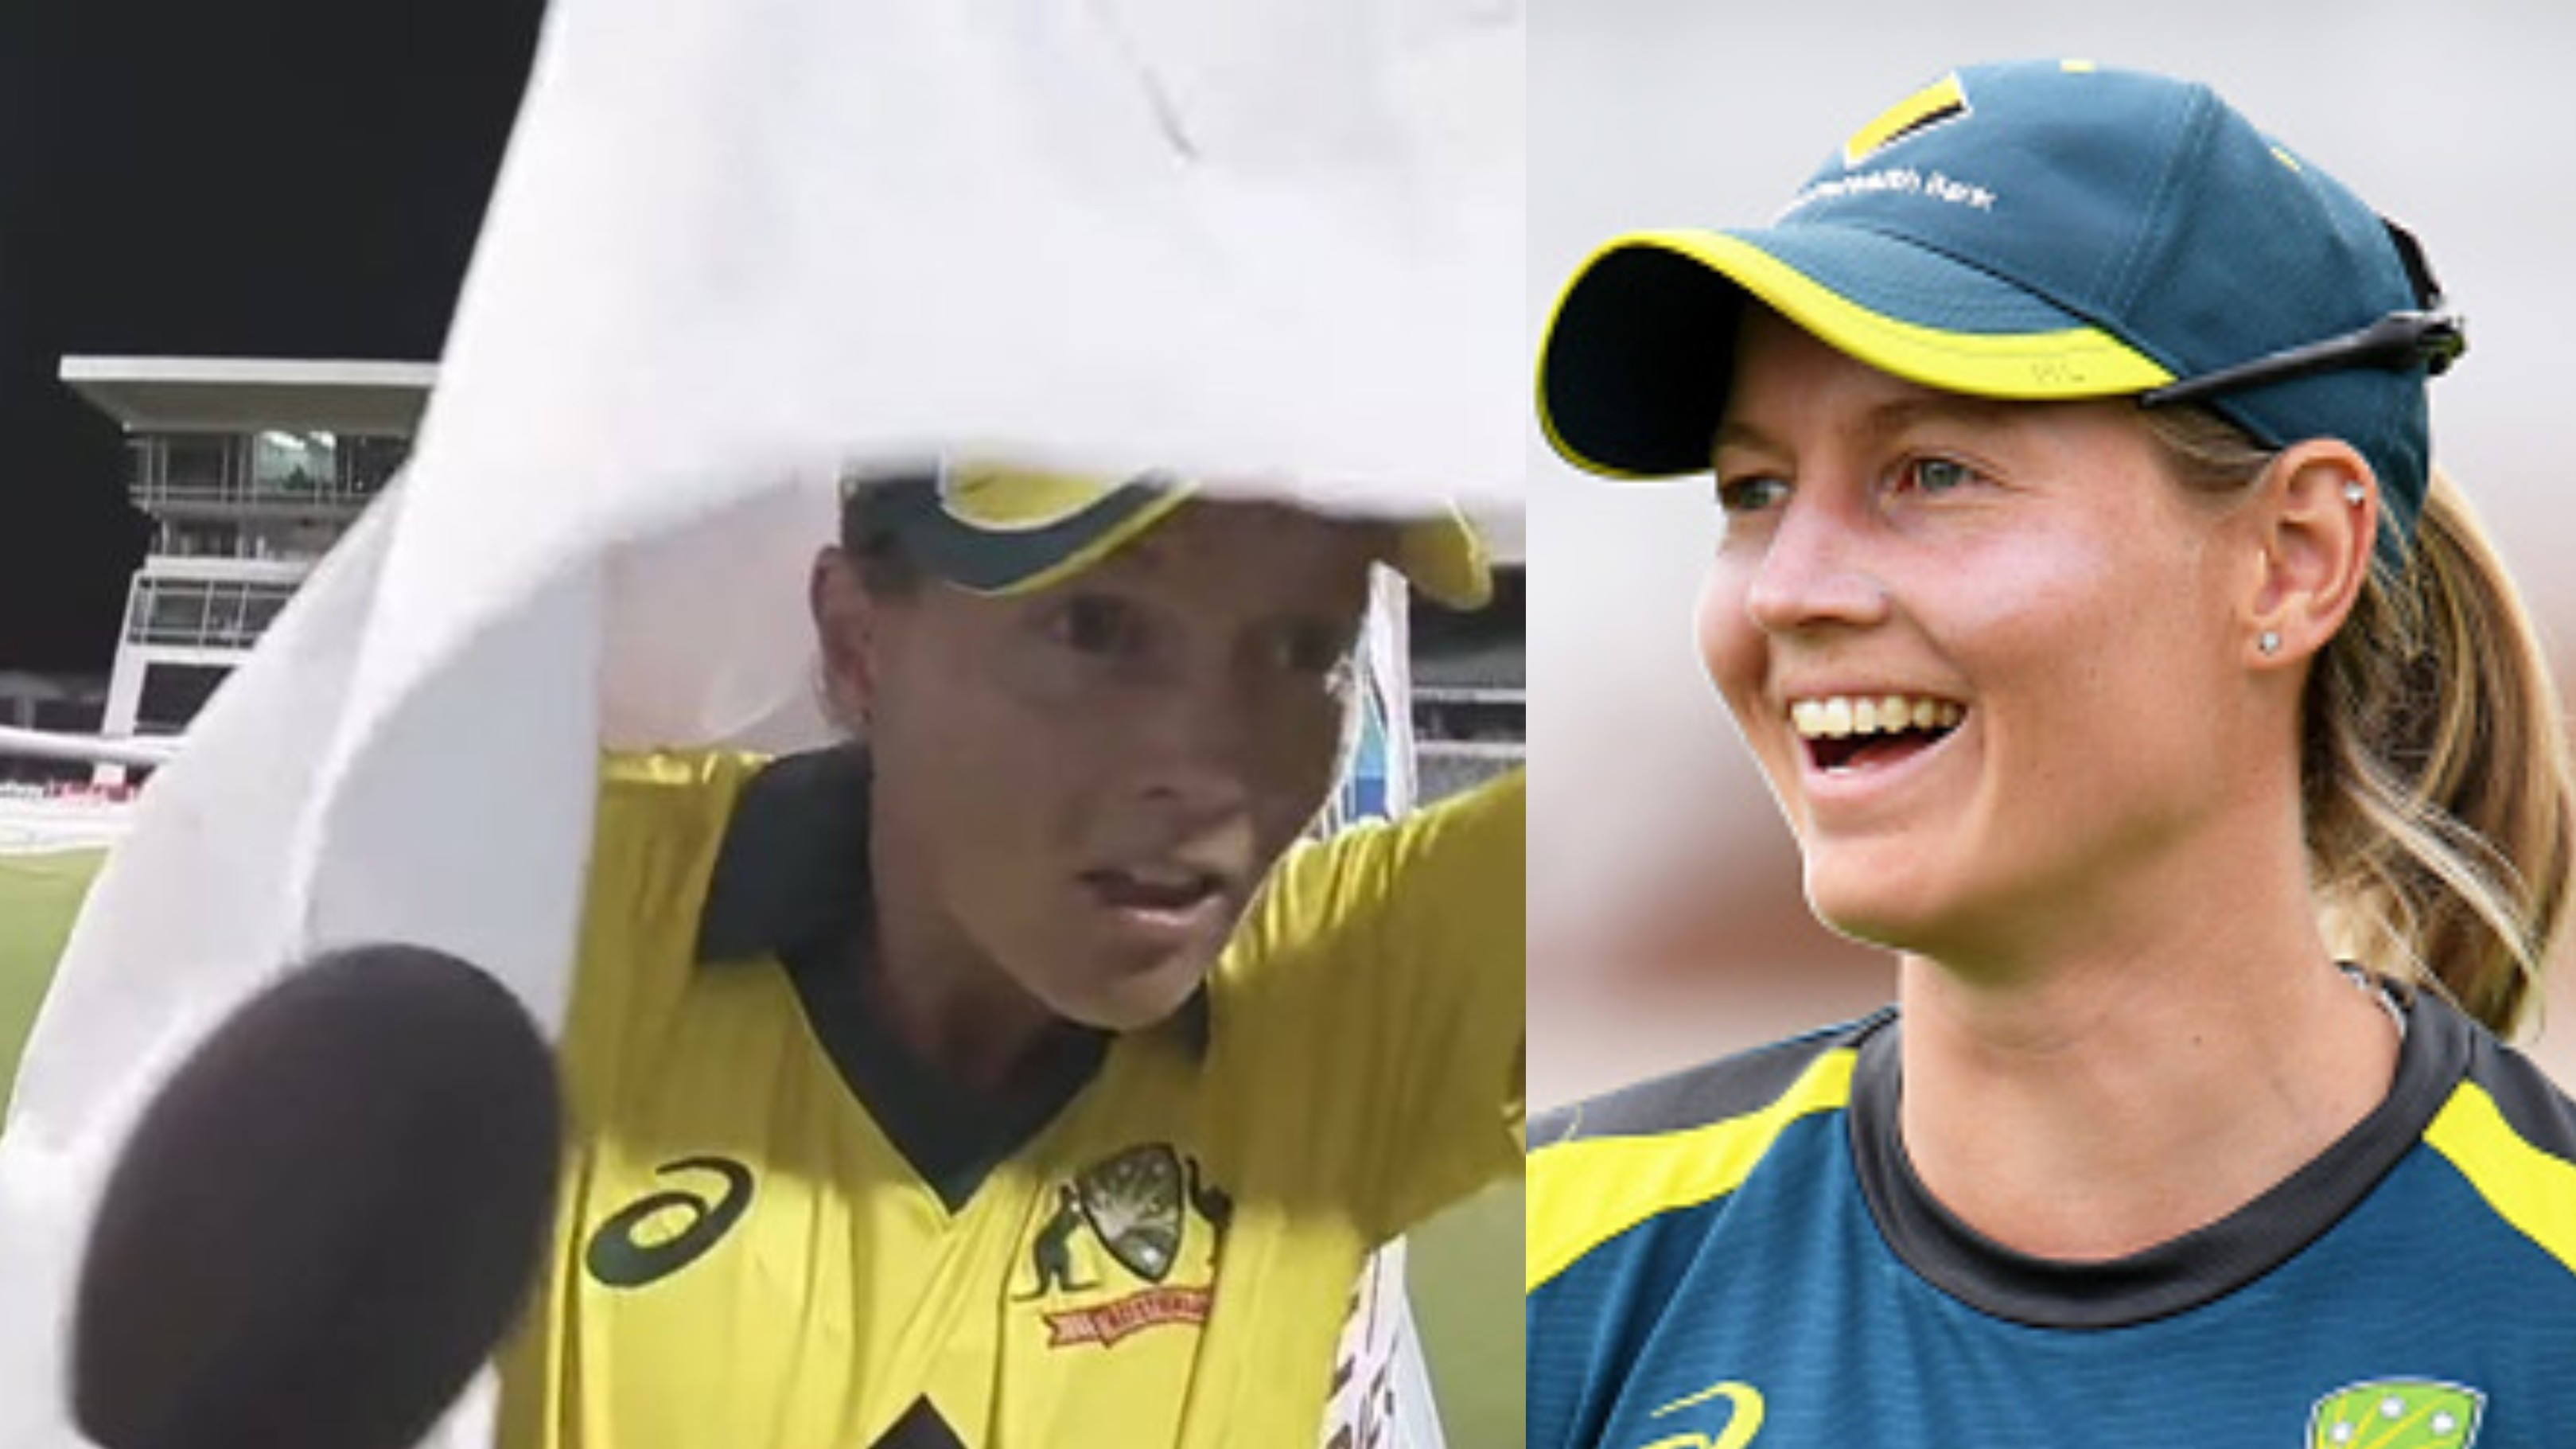 Watch - Australia's Meg Lanning hilariously gets hit on the head by Sponsors' banner